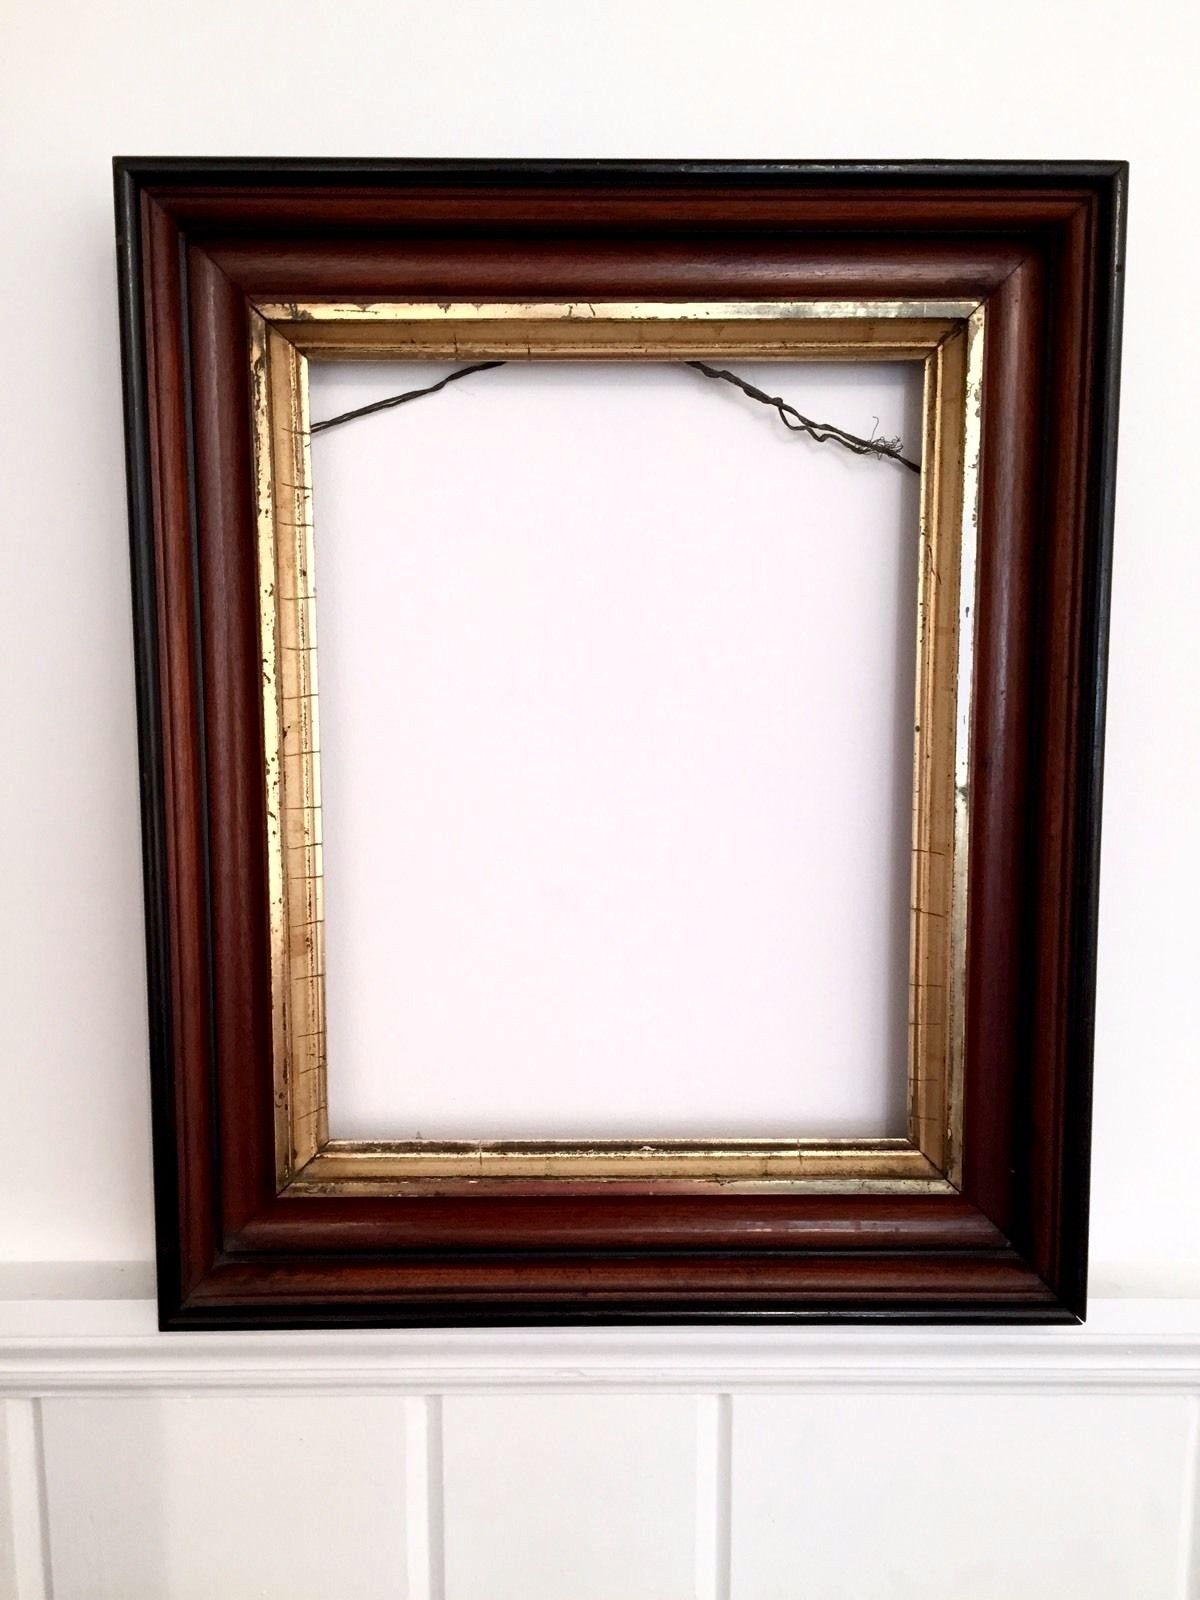 Victorian Antique Gilt Mirror Painting Art Frame Large Wood Ornate Throughout Ornate Gilt Mirrors (Image 14 of 15)